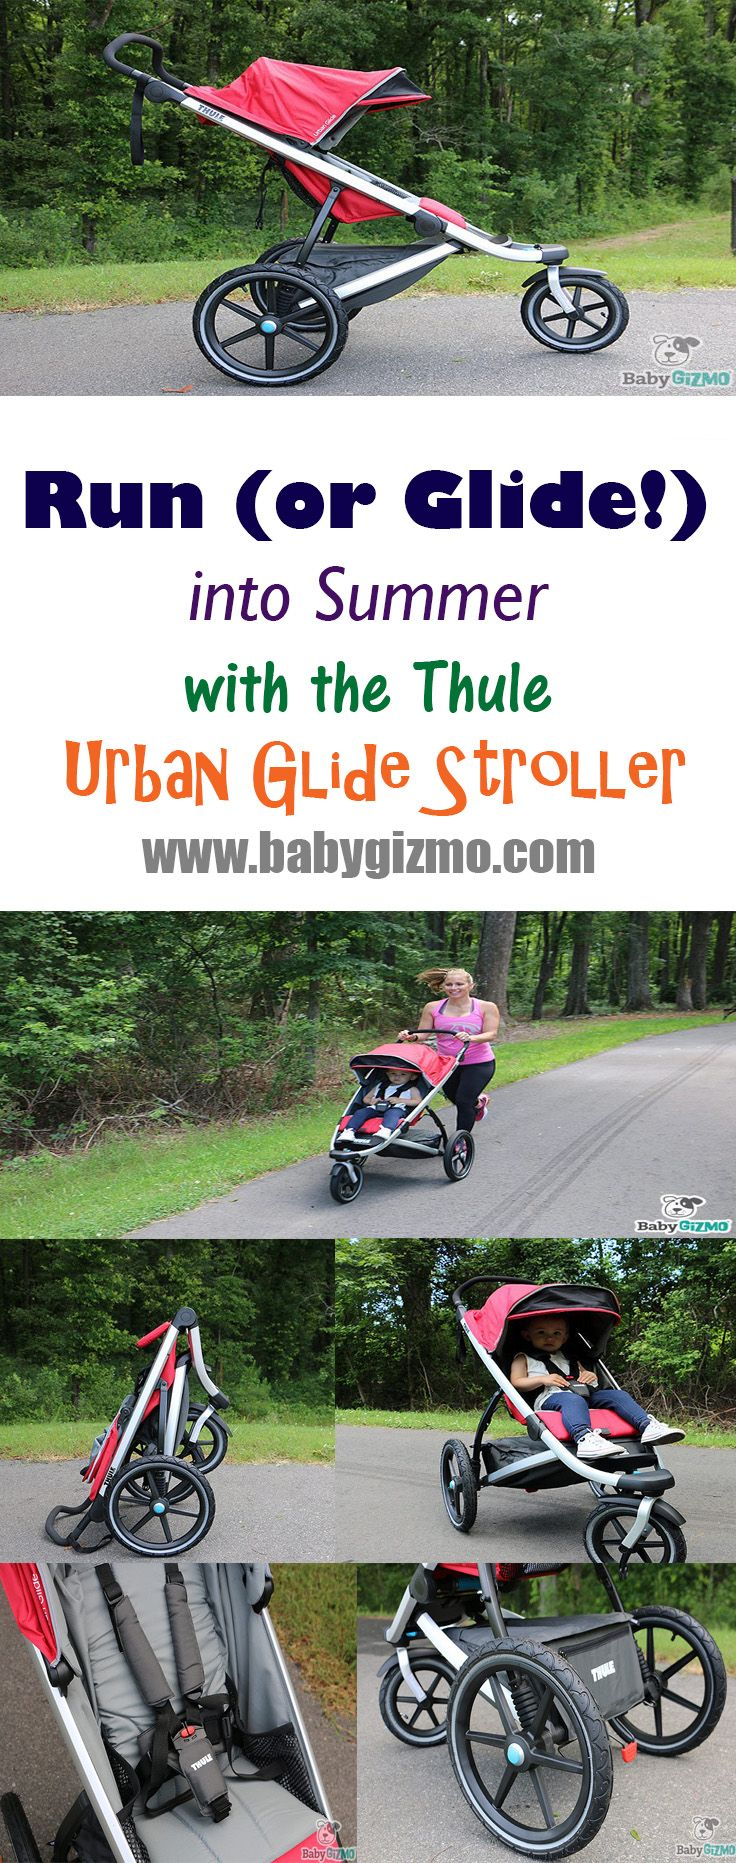 Run (or Glide!) into Summer with the Thule Urban Glide